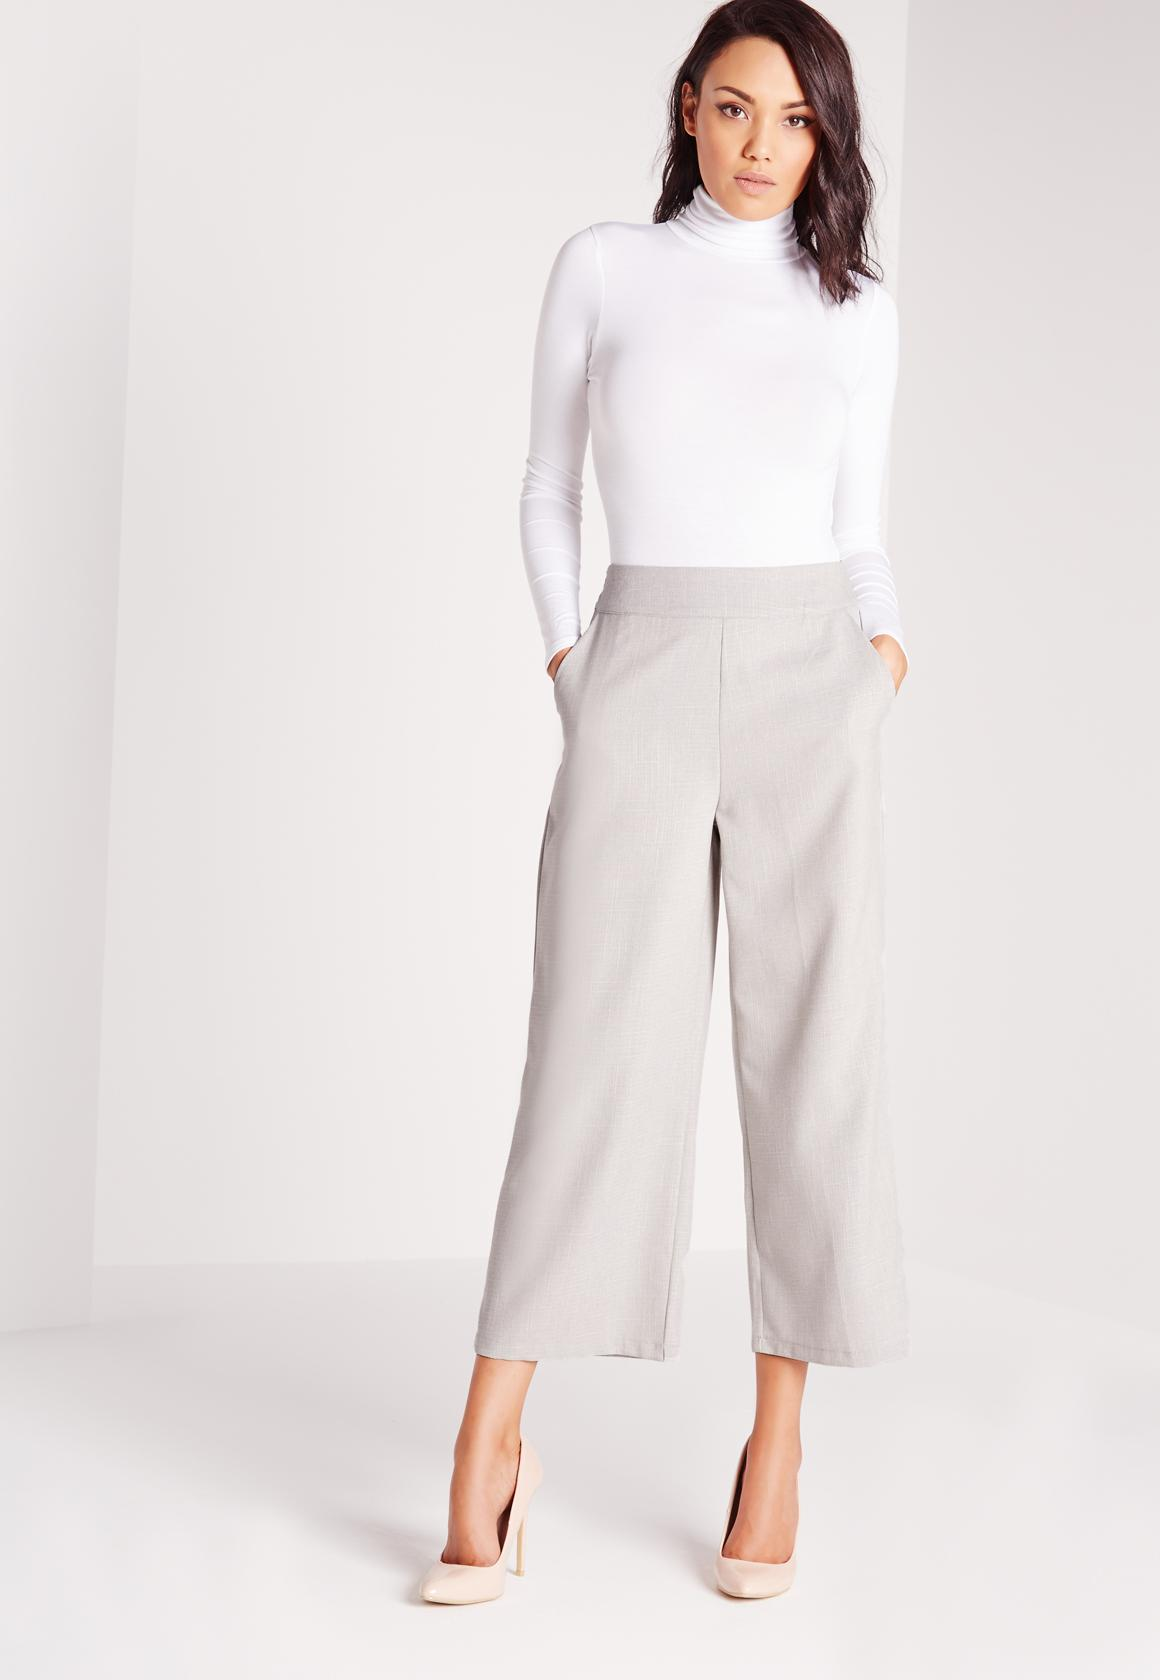 Women's Pants - Shop Pants Online | Missguided